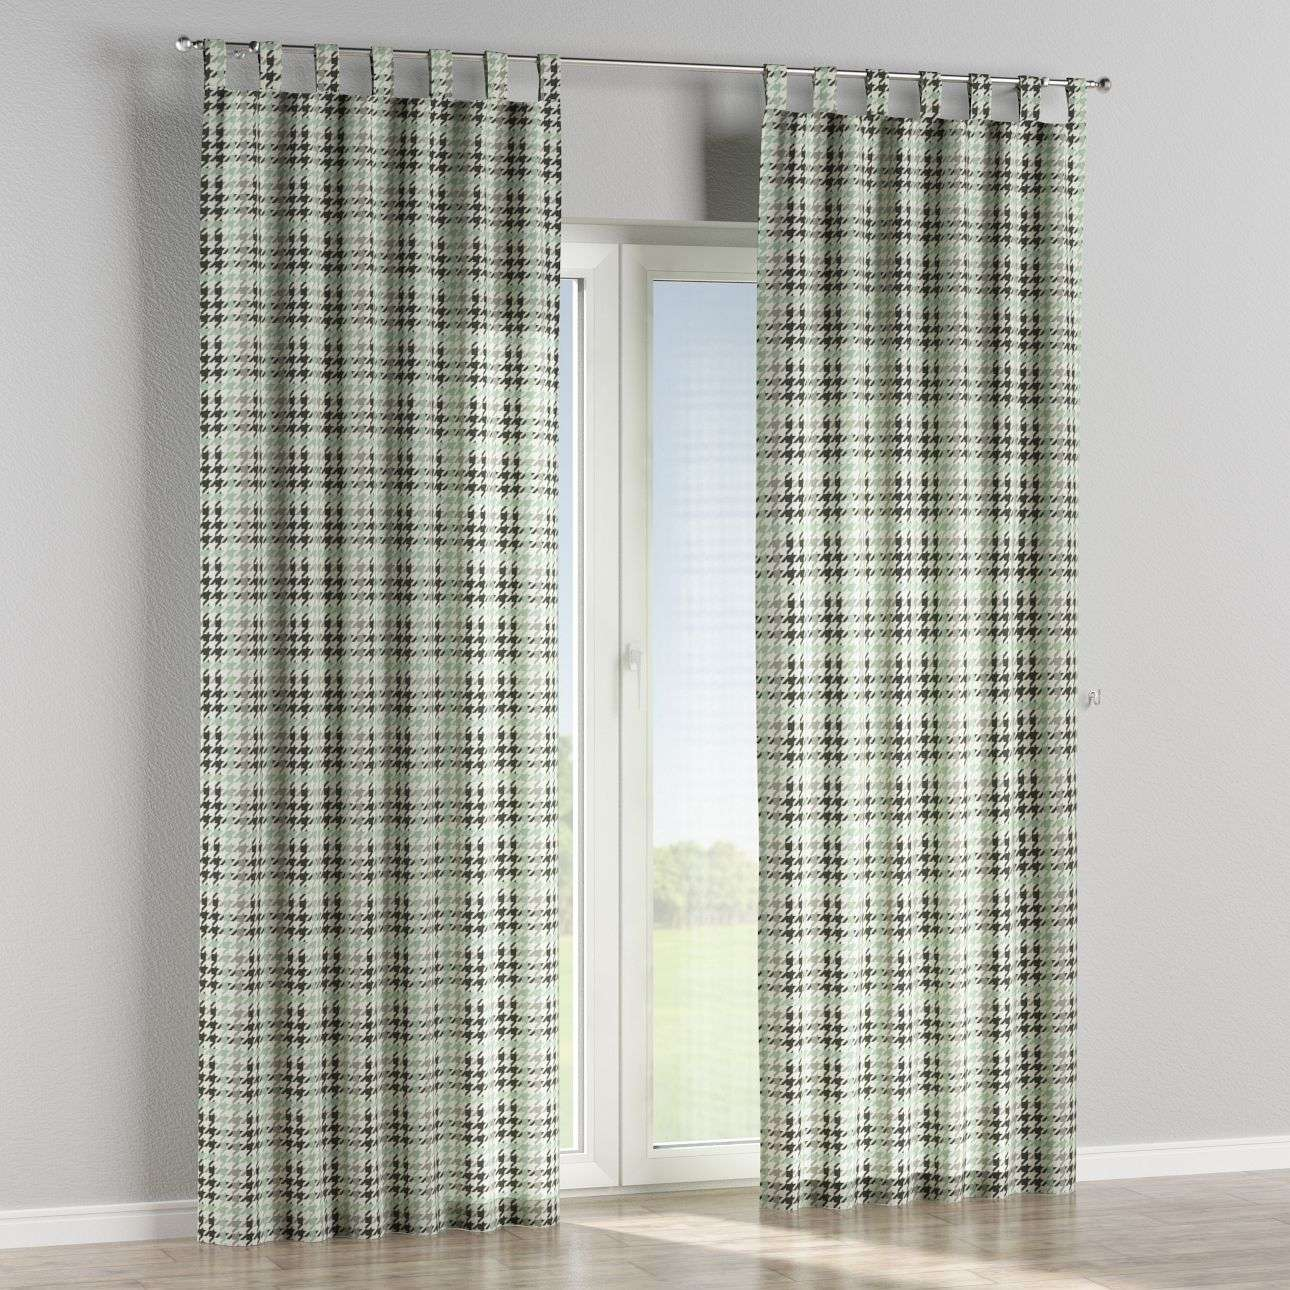 Tab top curtains in collection Brooklyn, fabric: 137-77